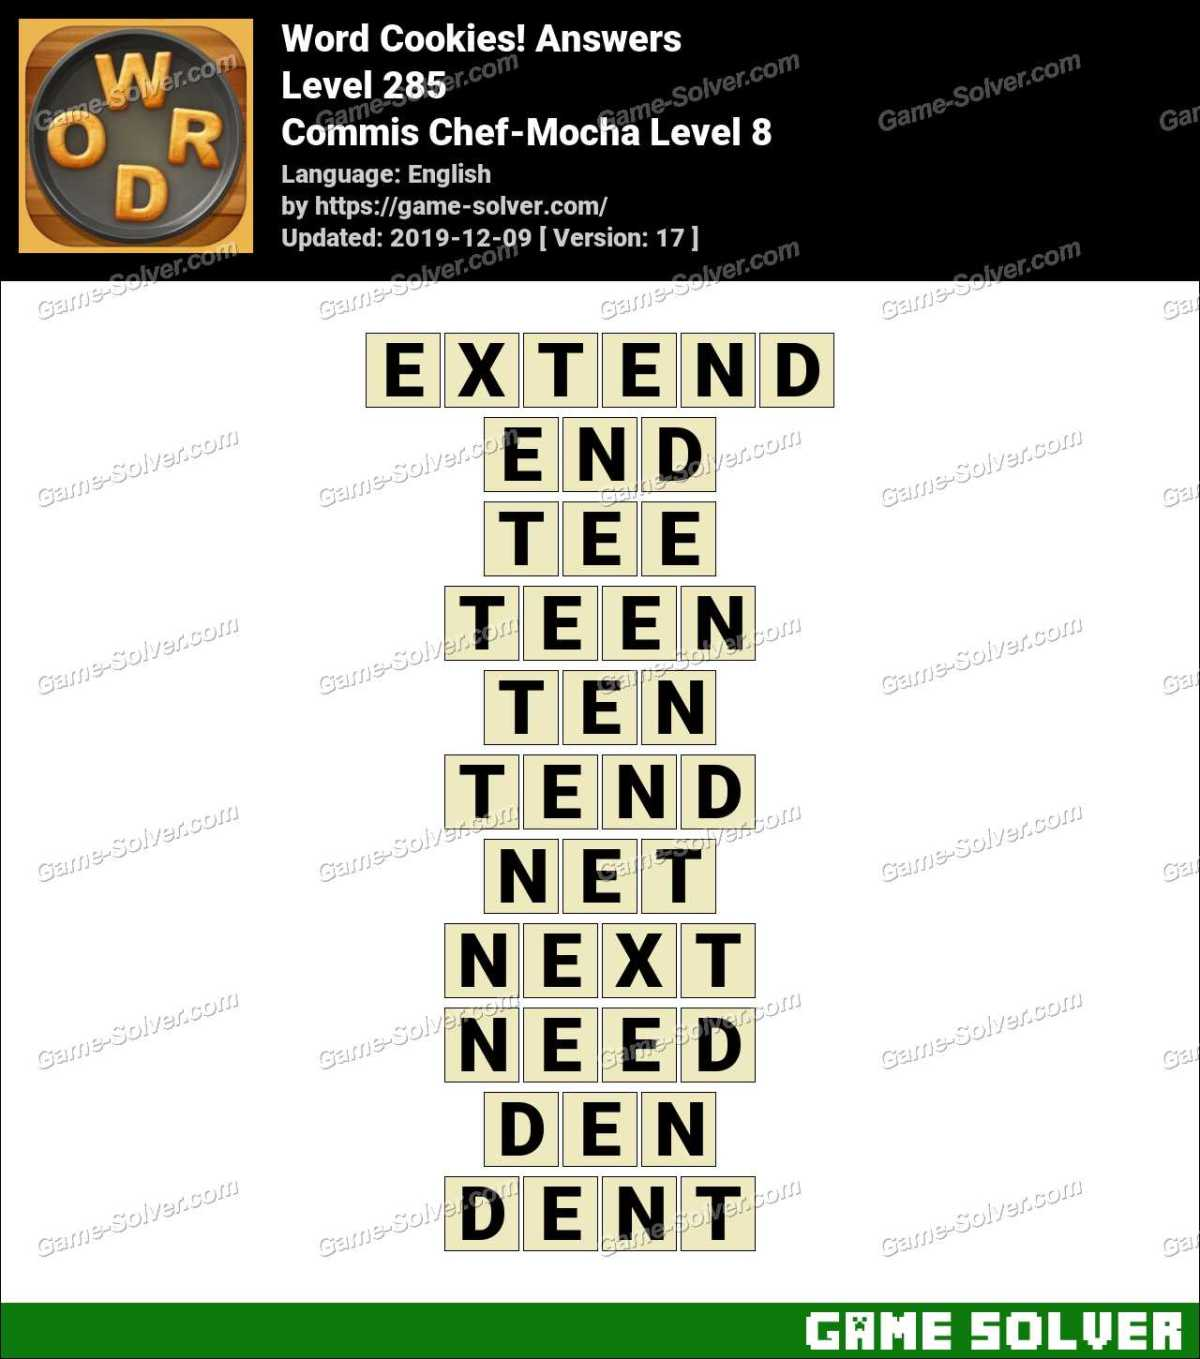 Word Cookies Commis Chef-Mocha Level 8 Answers